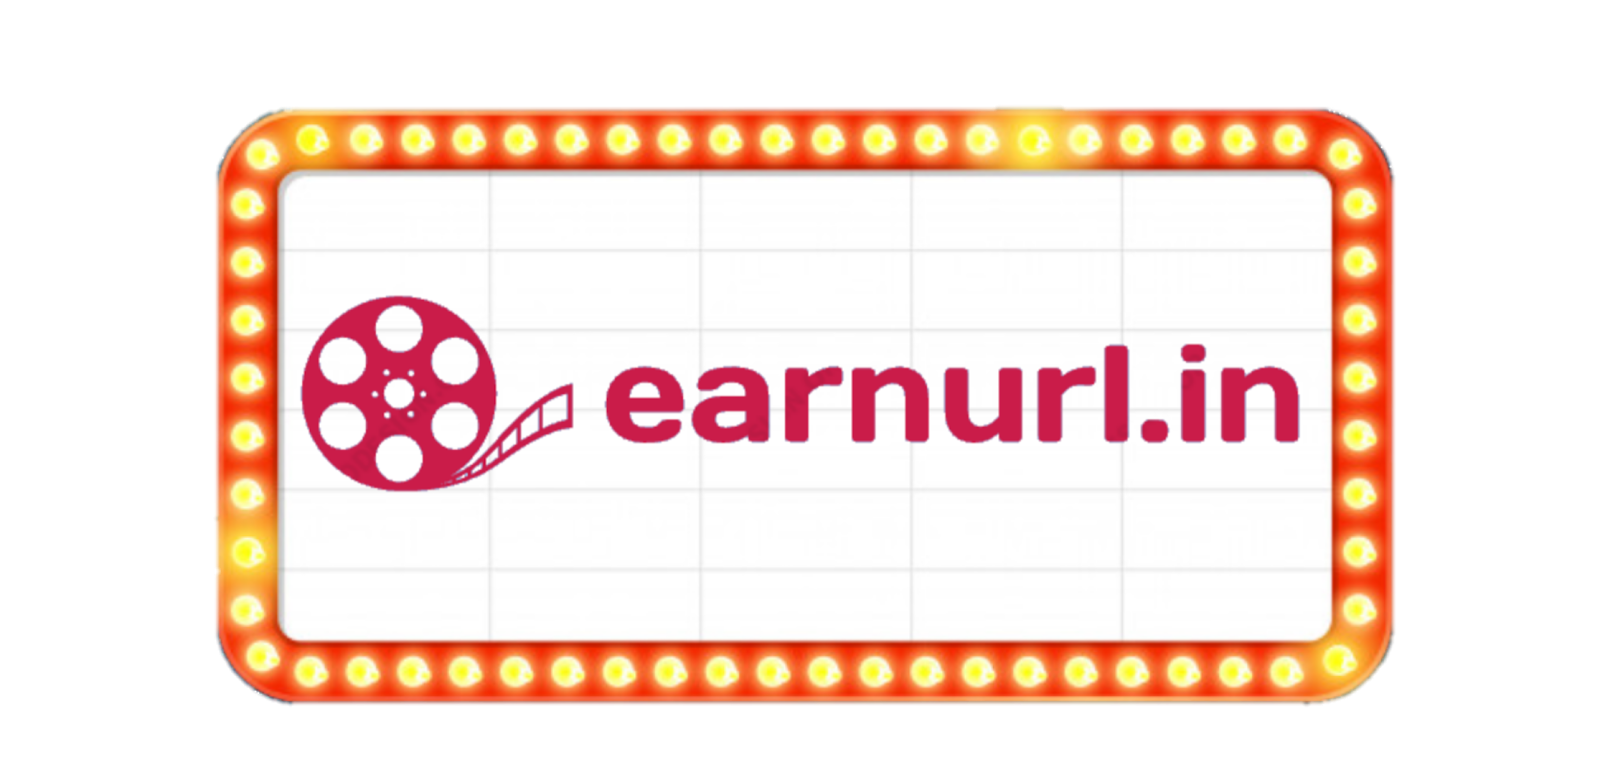 Earnurl.IN